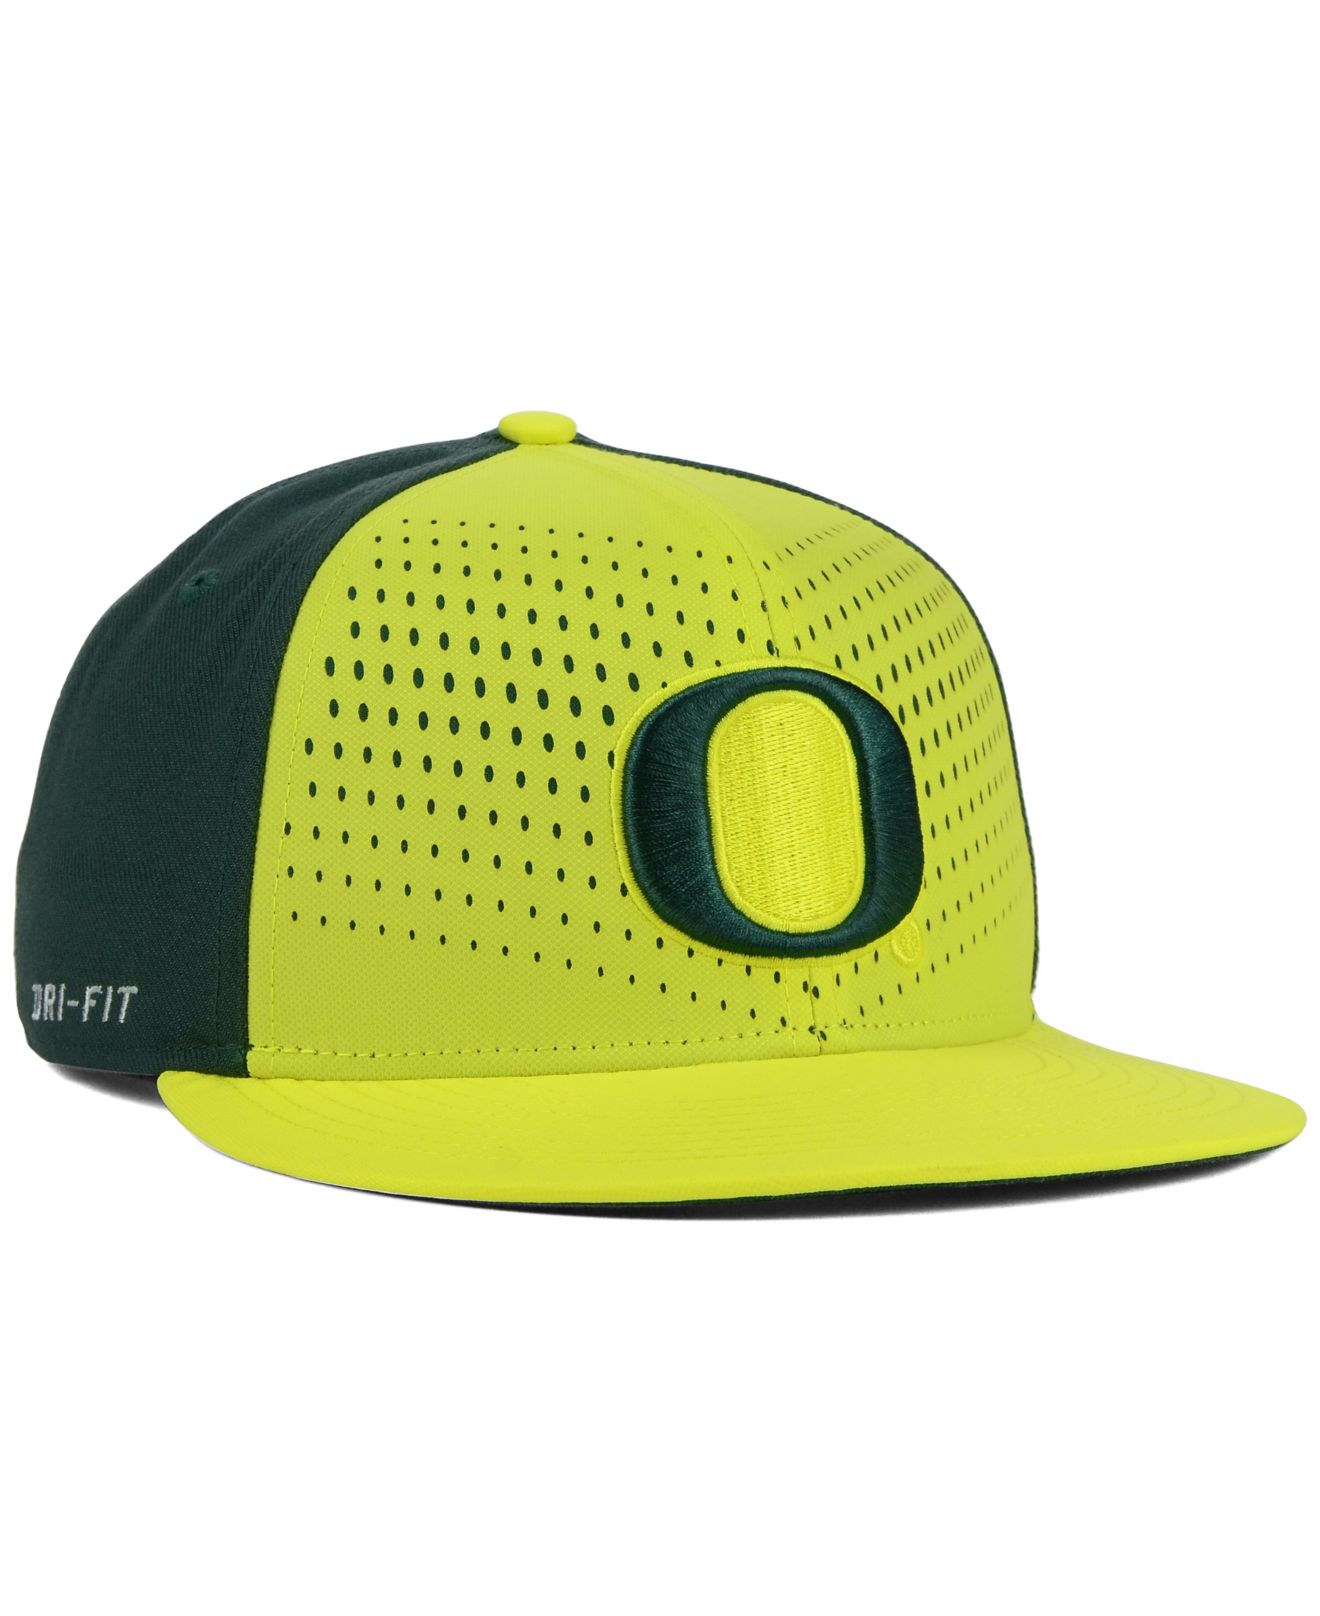 new style 082dc 29790 ... top quality lyst nike oregon ducks true seasonal snapback cap in yellow  for men 9fdc6 7c37f